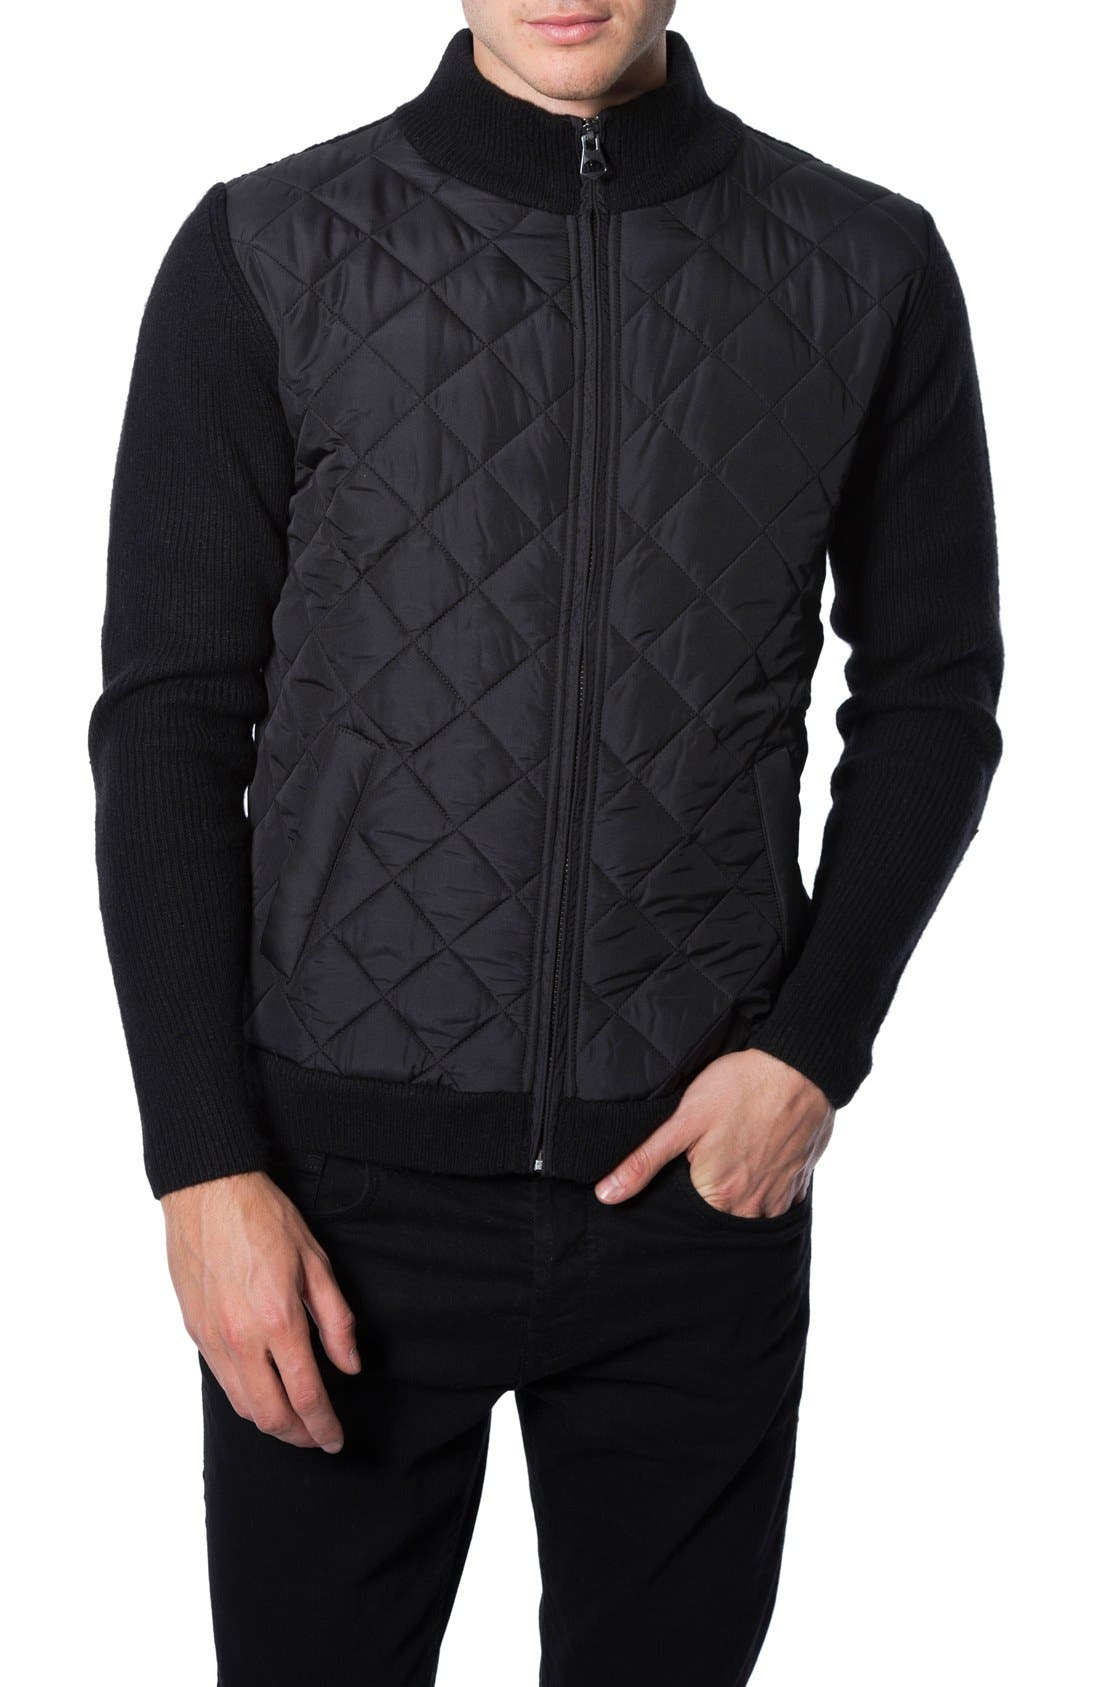 'Gatti' Quilted Panel Lambswool Knit Jacket,                             Main thumbnail 1, color,                             001